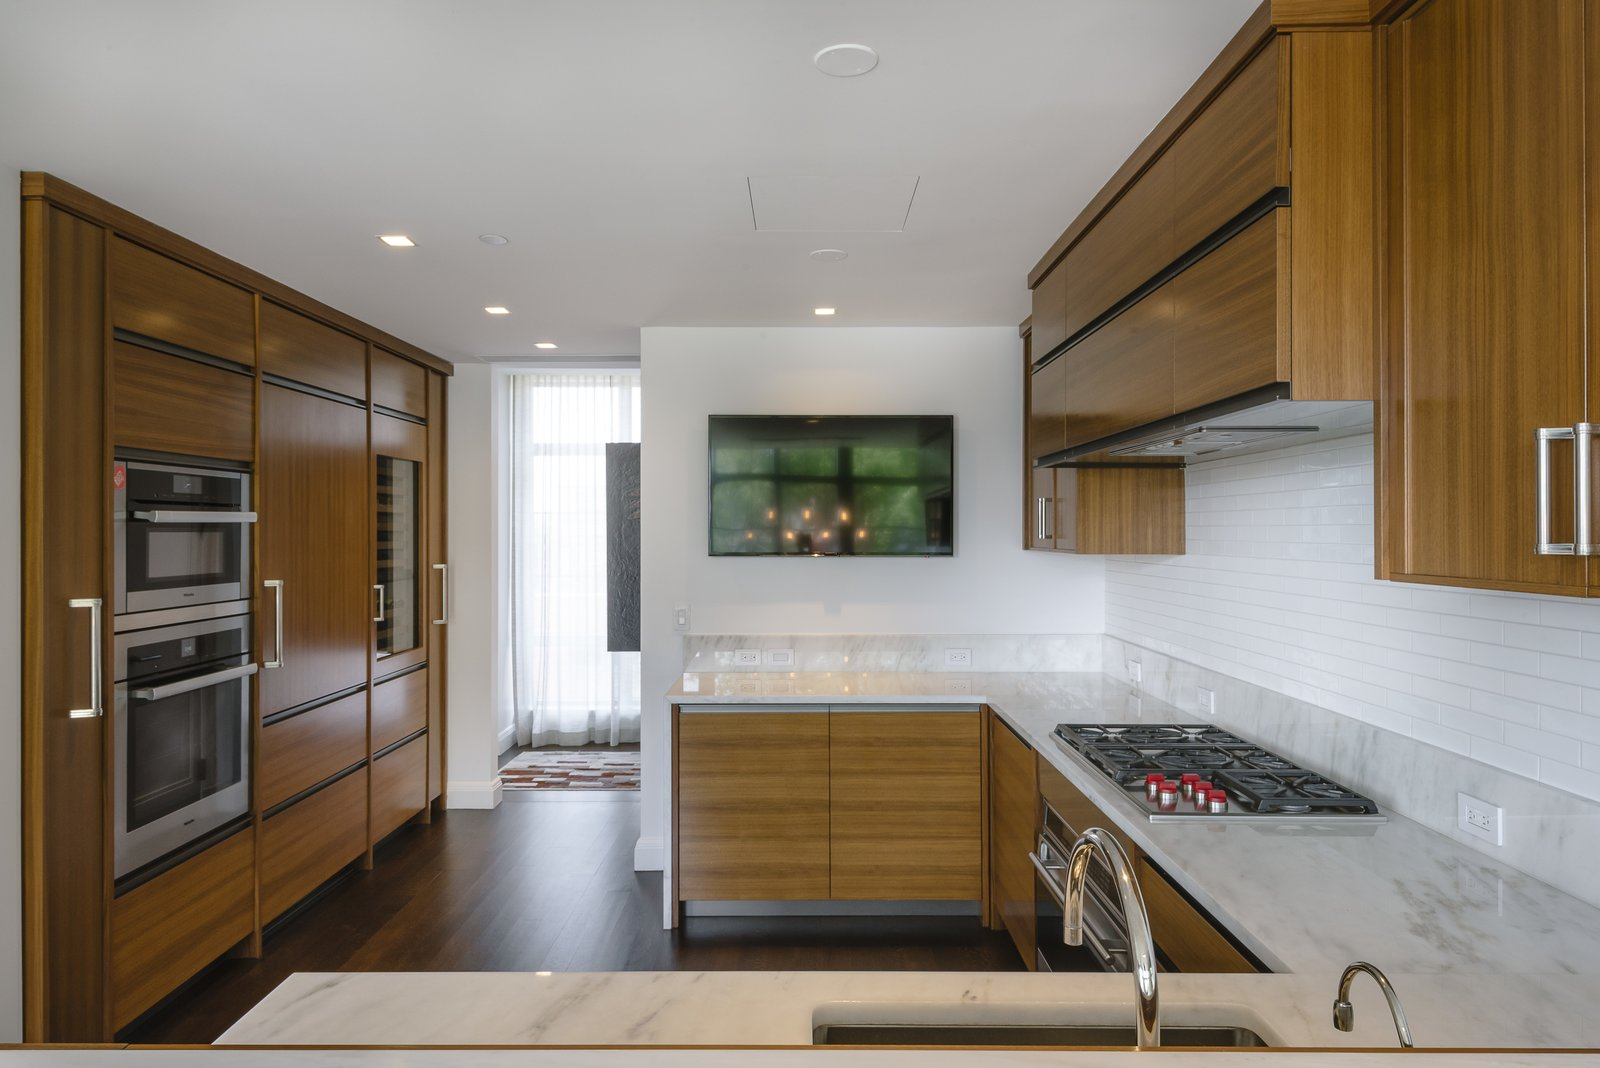 The customized open kitchen features top-of-the-line appliances.